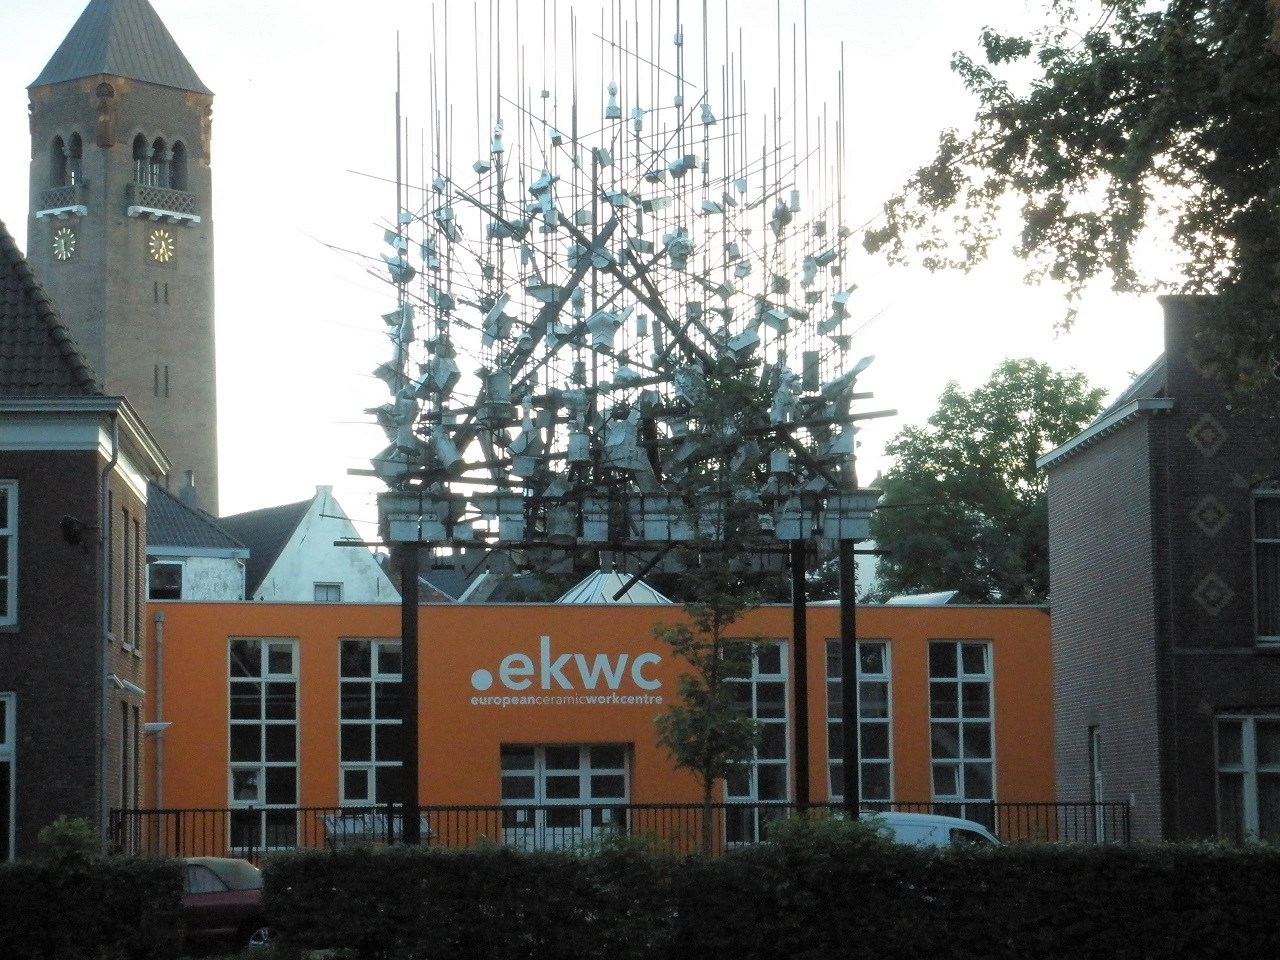 European Ceramic Work Centre, s'Hertogenbosch, The Netherlands